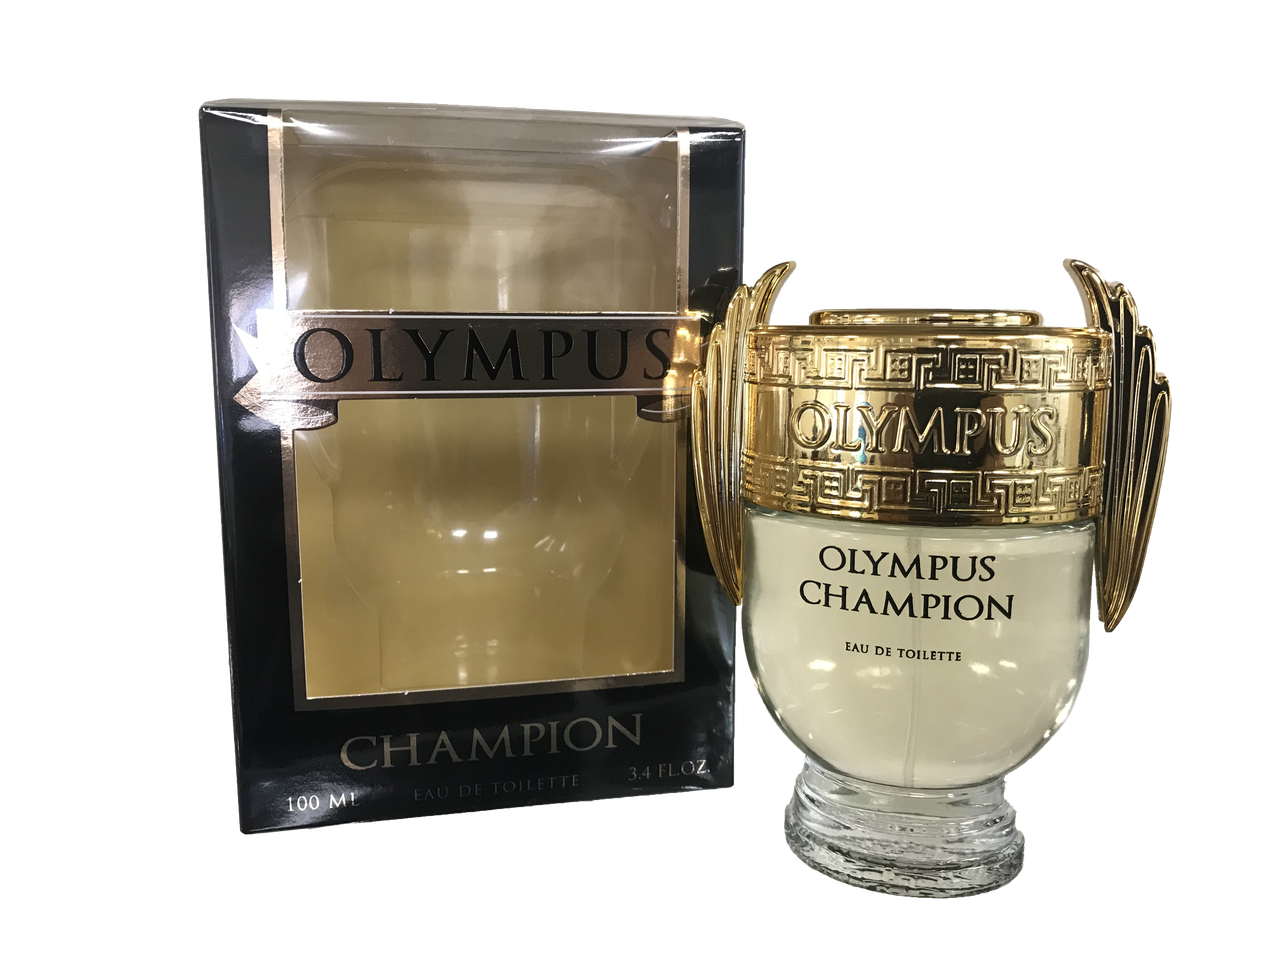 Olympus Champion Art Parfum